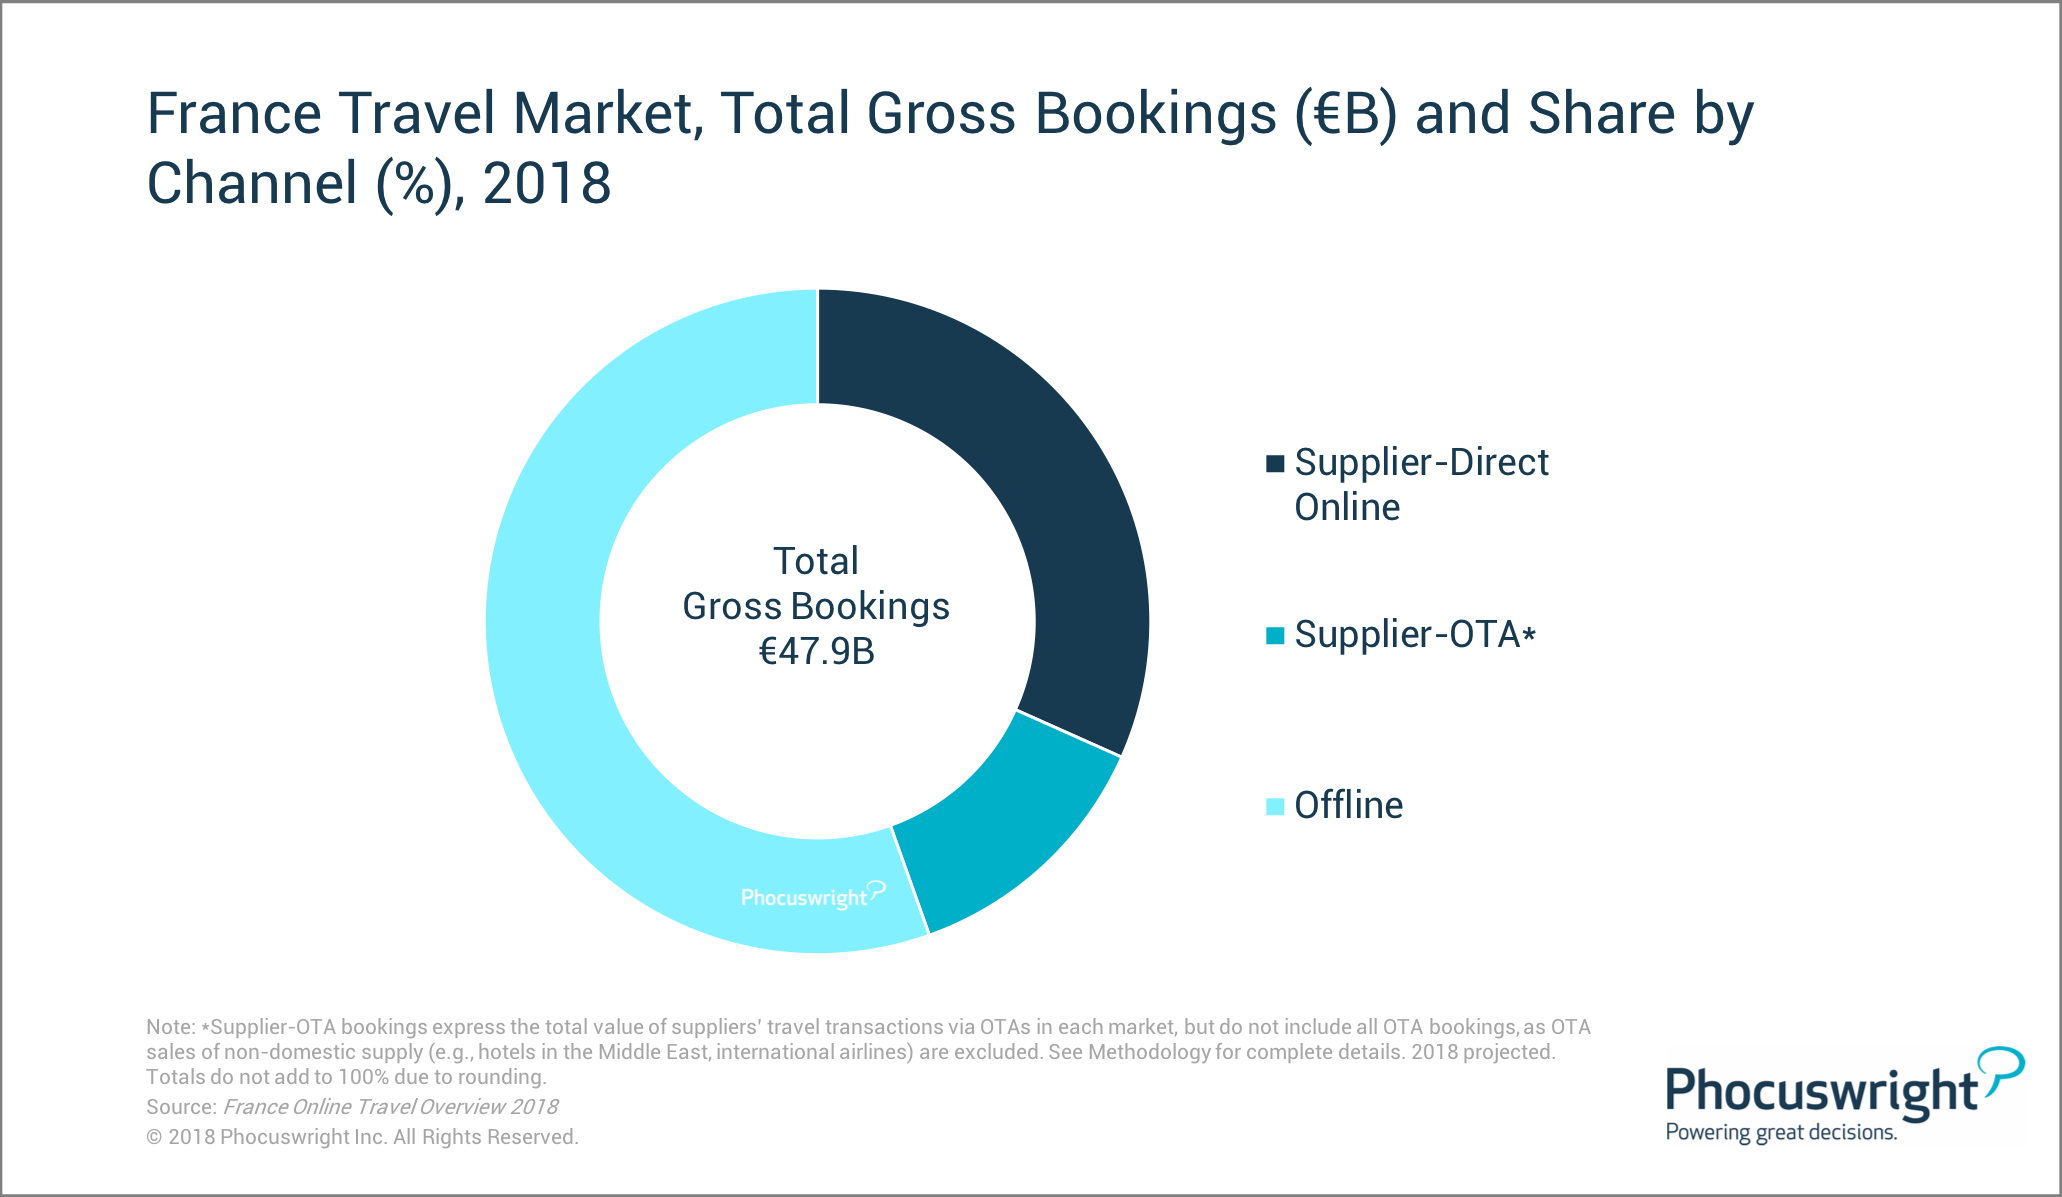 France Travel Market Total Gross Bookings And Share By Channel